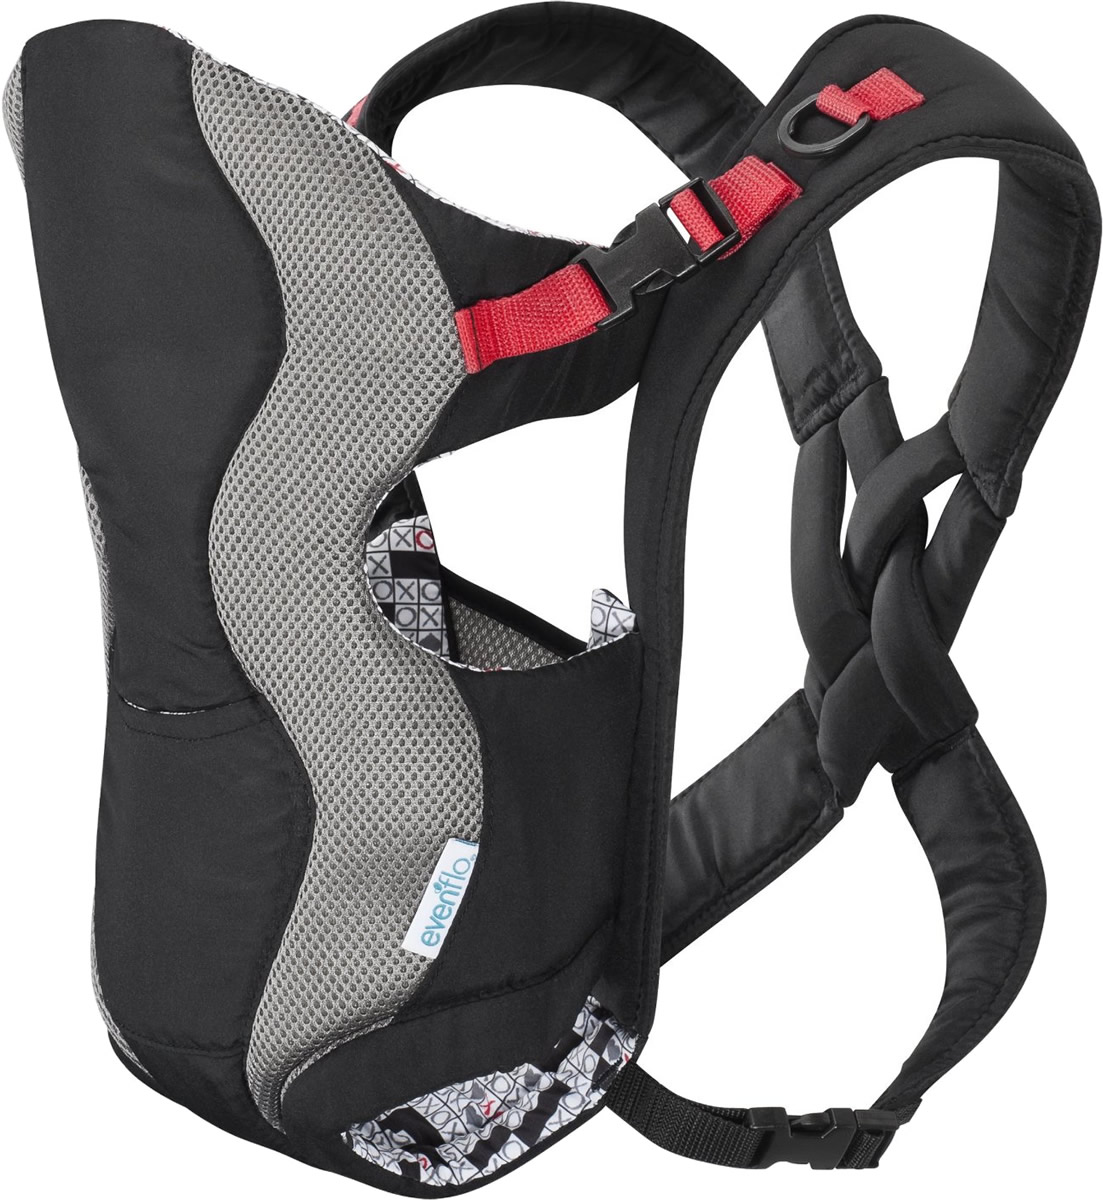 da8ca6b9b26 Evenflo Breathable Carrier - Crossword